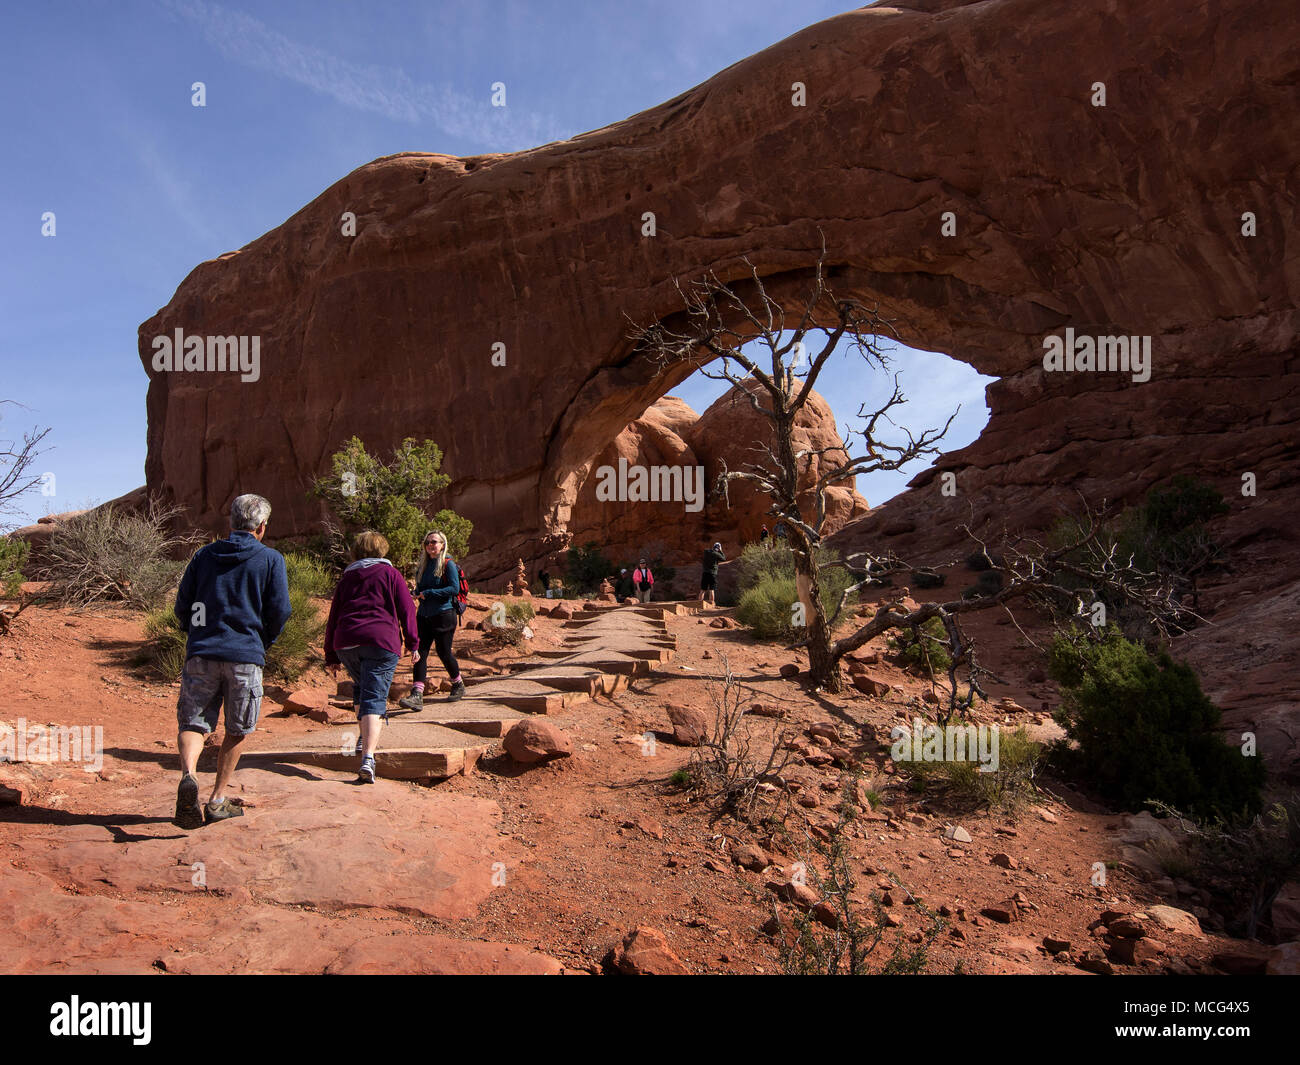 Going West, tourists from around the world, young and old, go to the mountains and wonder the Arches National Park in Moab, Utah. - Stock Image